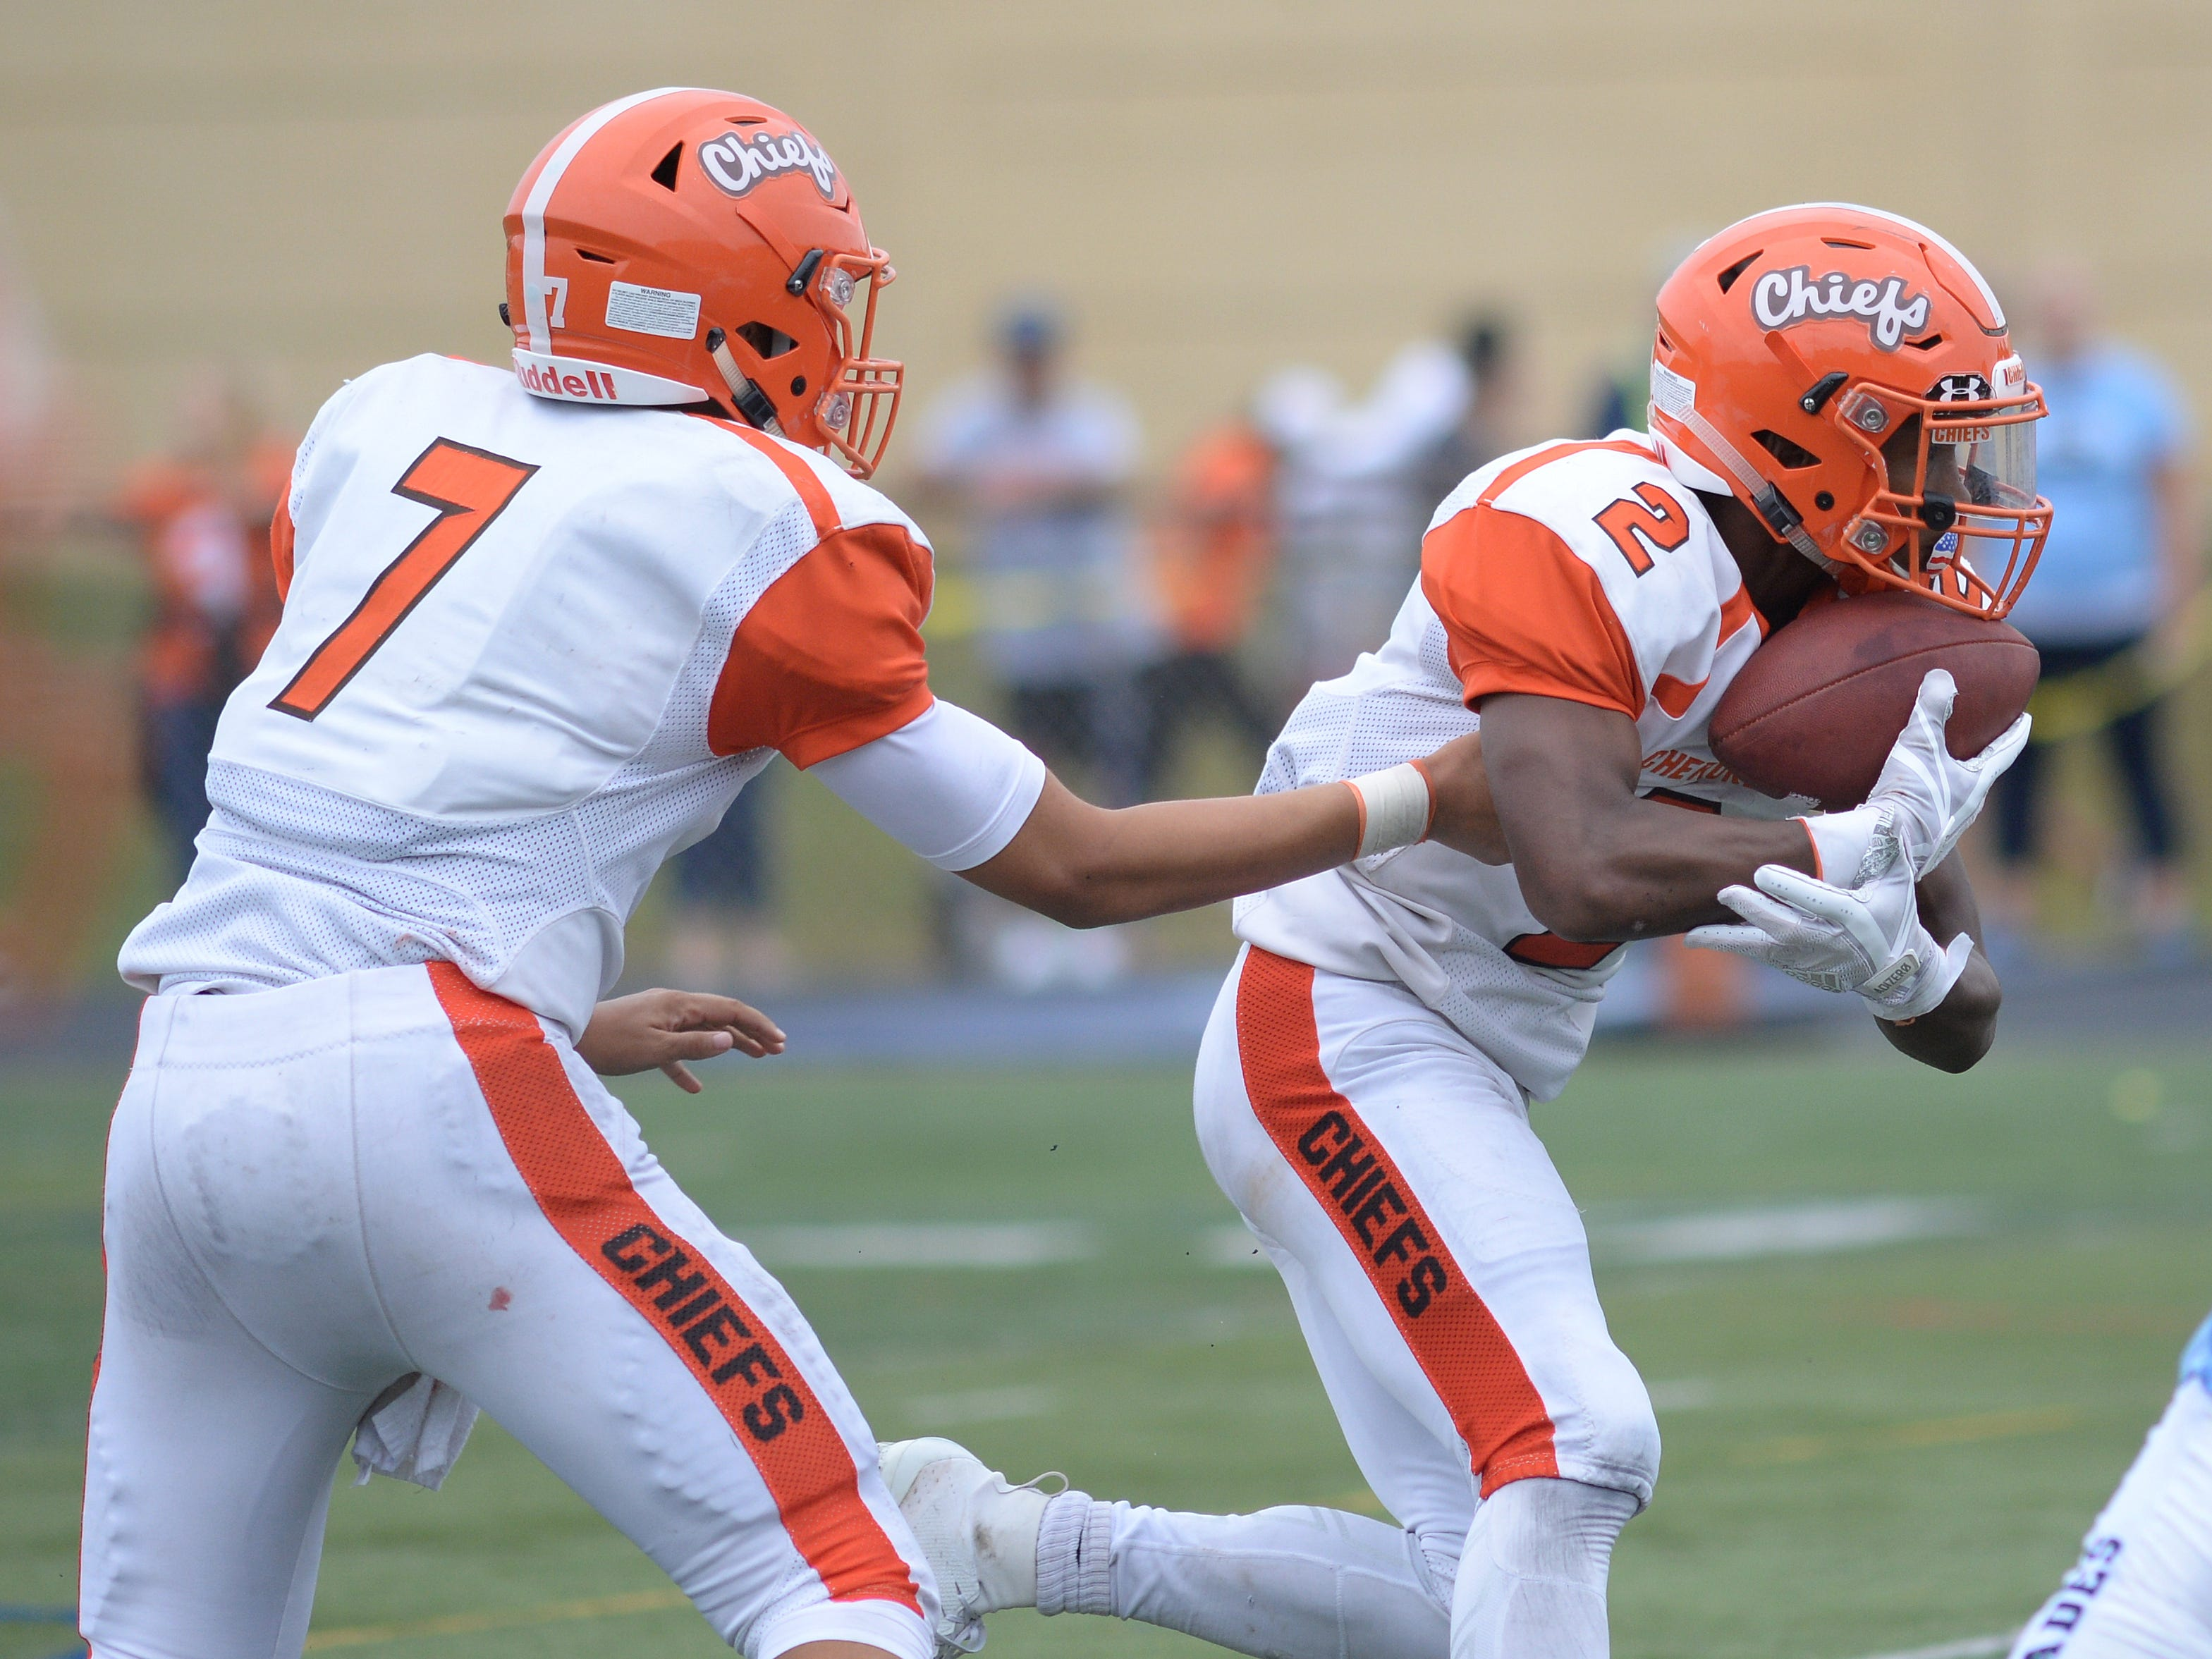 Cherokee's quarter back Aiden Douglas hands off to EJ Bard during Saturday's football game against Shawnee at Shawnee High School,  Sept. 8, 2018.